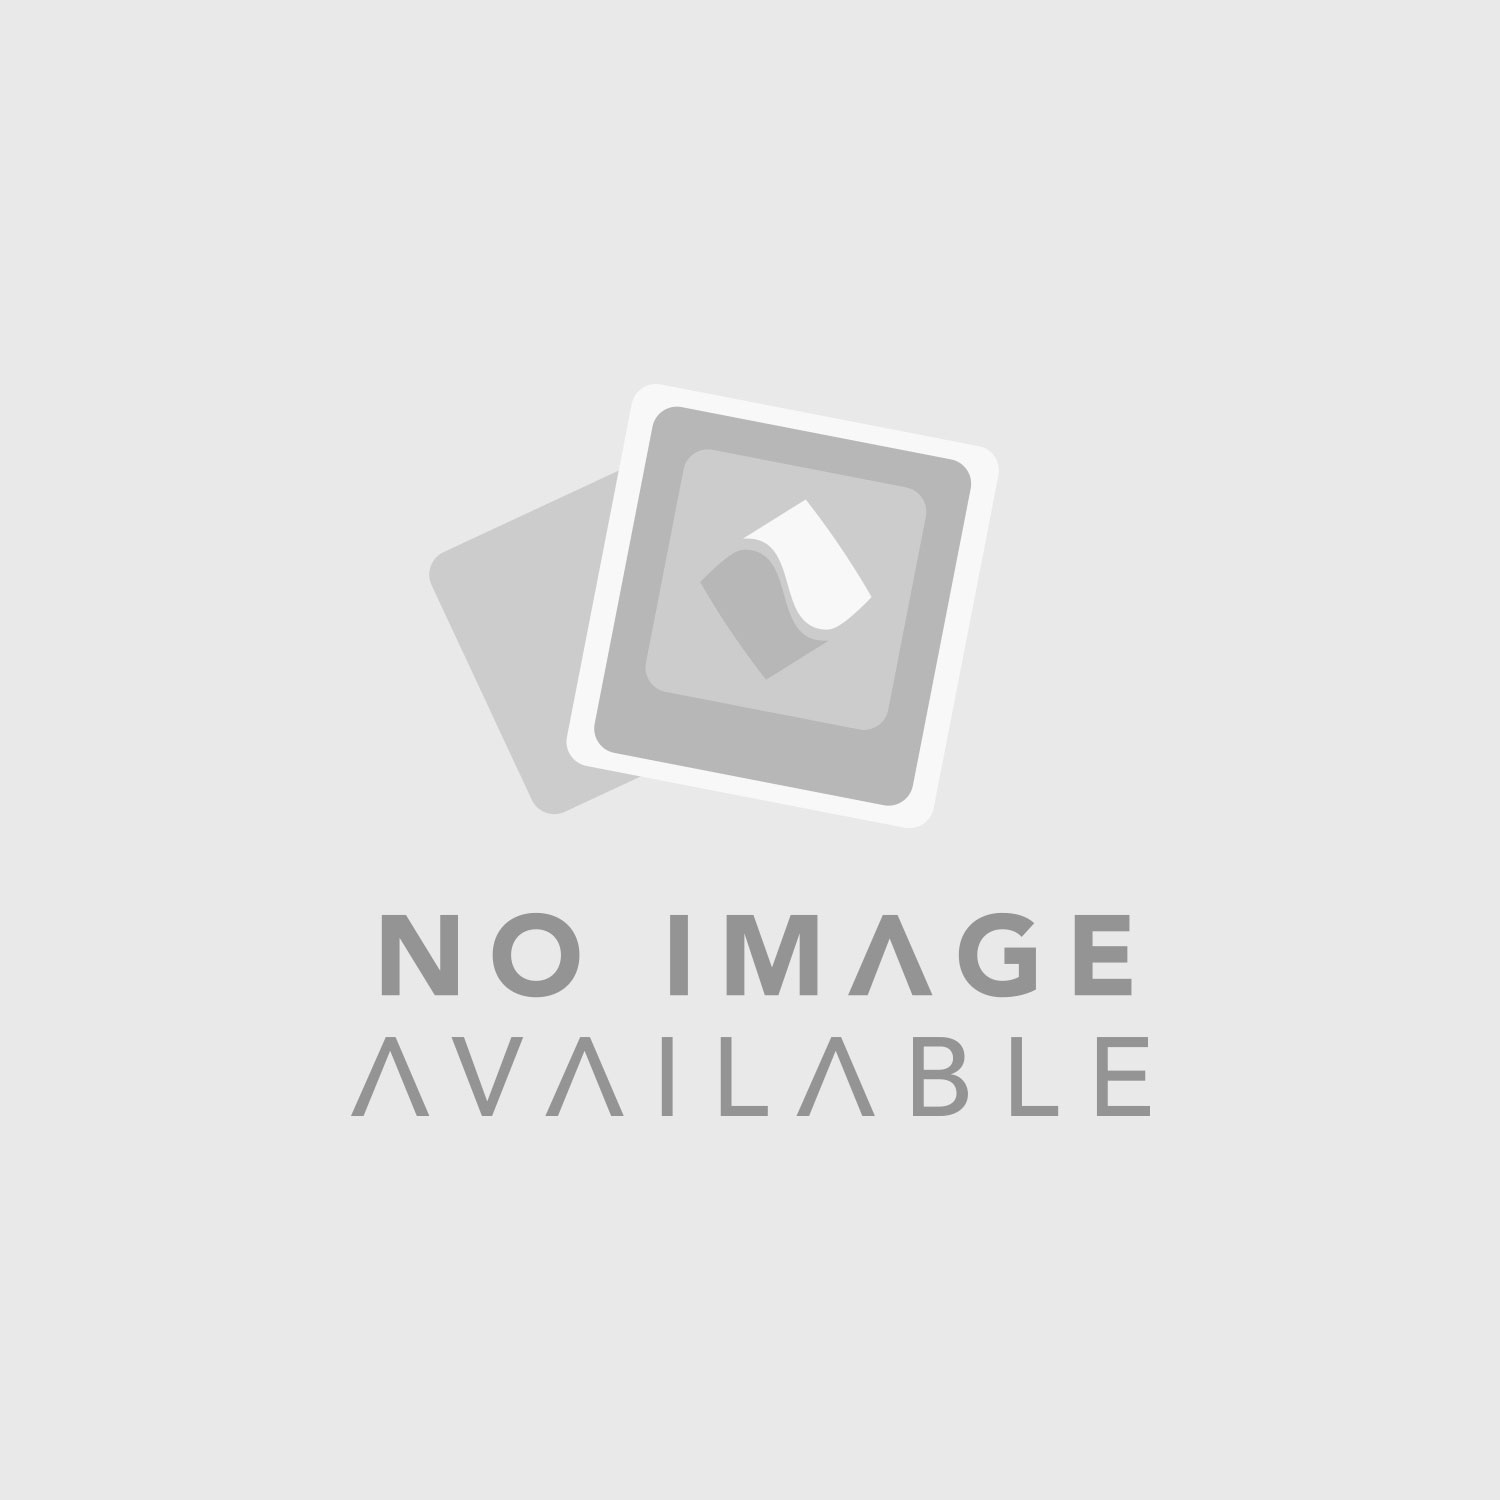 Neutrik PXR-1 Color Coding Ring (Brown)